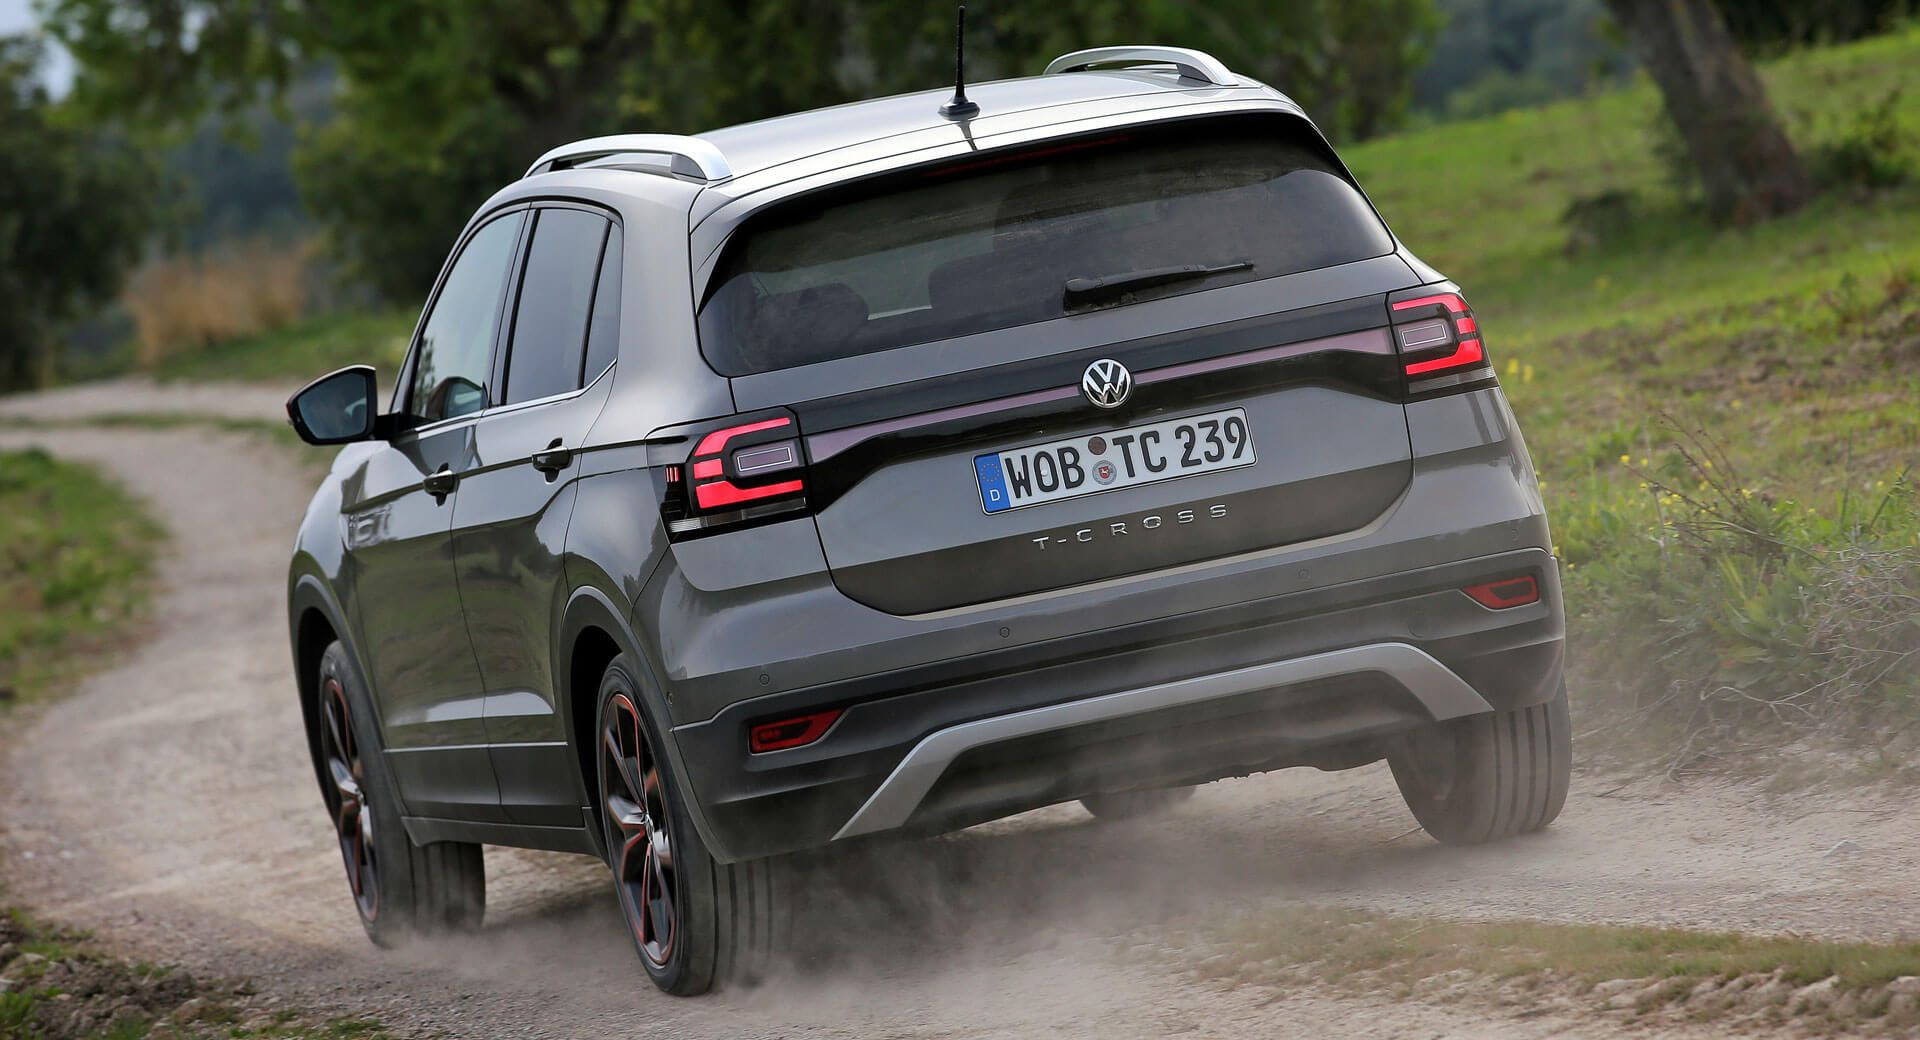 Vw T Cross Launches With The Most Powerful Engine Yet Newcars Prices Vw Vwt Cross Cars Carsofinstagram Carporn Carlifest New Cars Dream Cars Suv Trucks